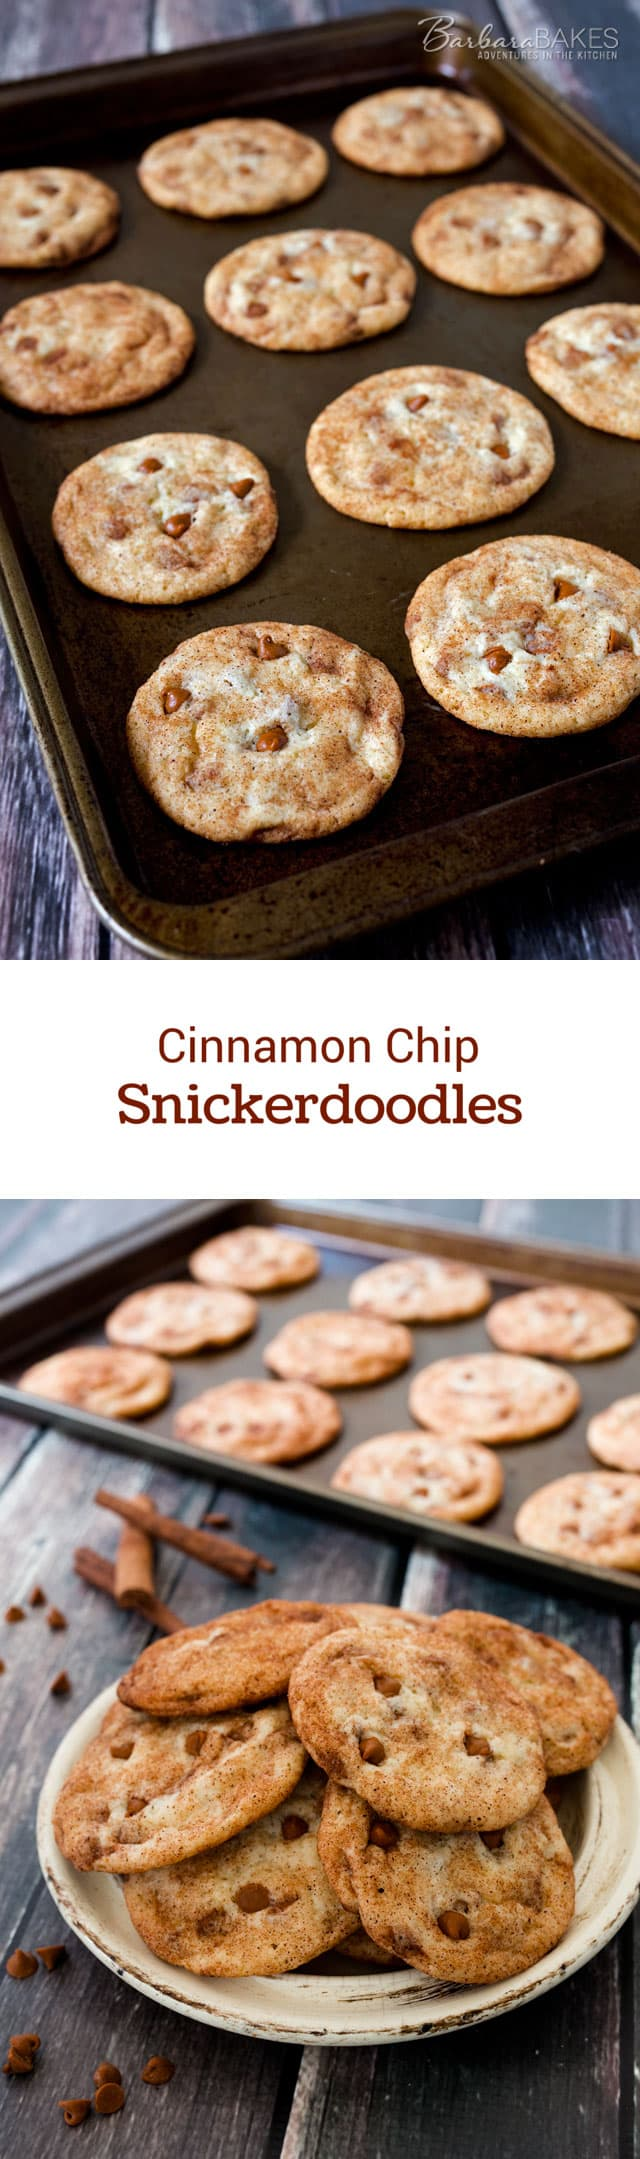 Cinnamon-Chip-Snickerdoodle-Collage-Barbara-Bakes